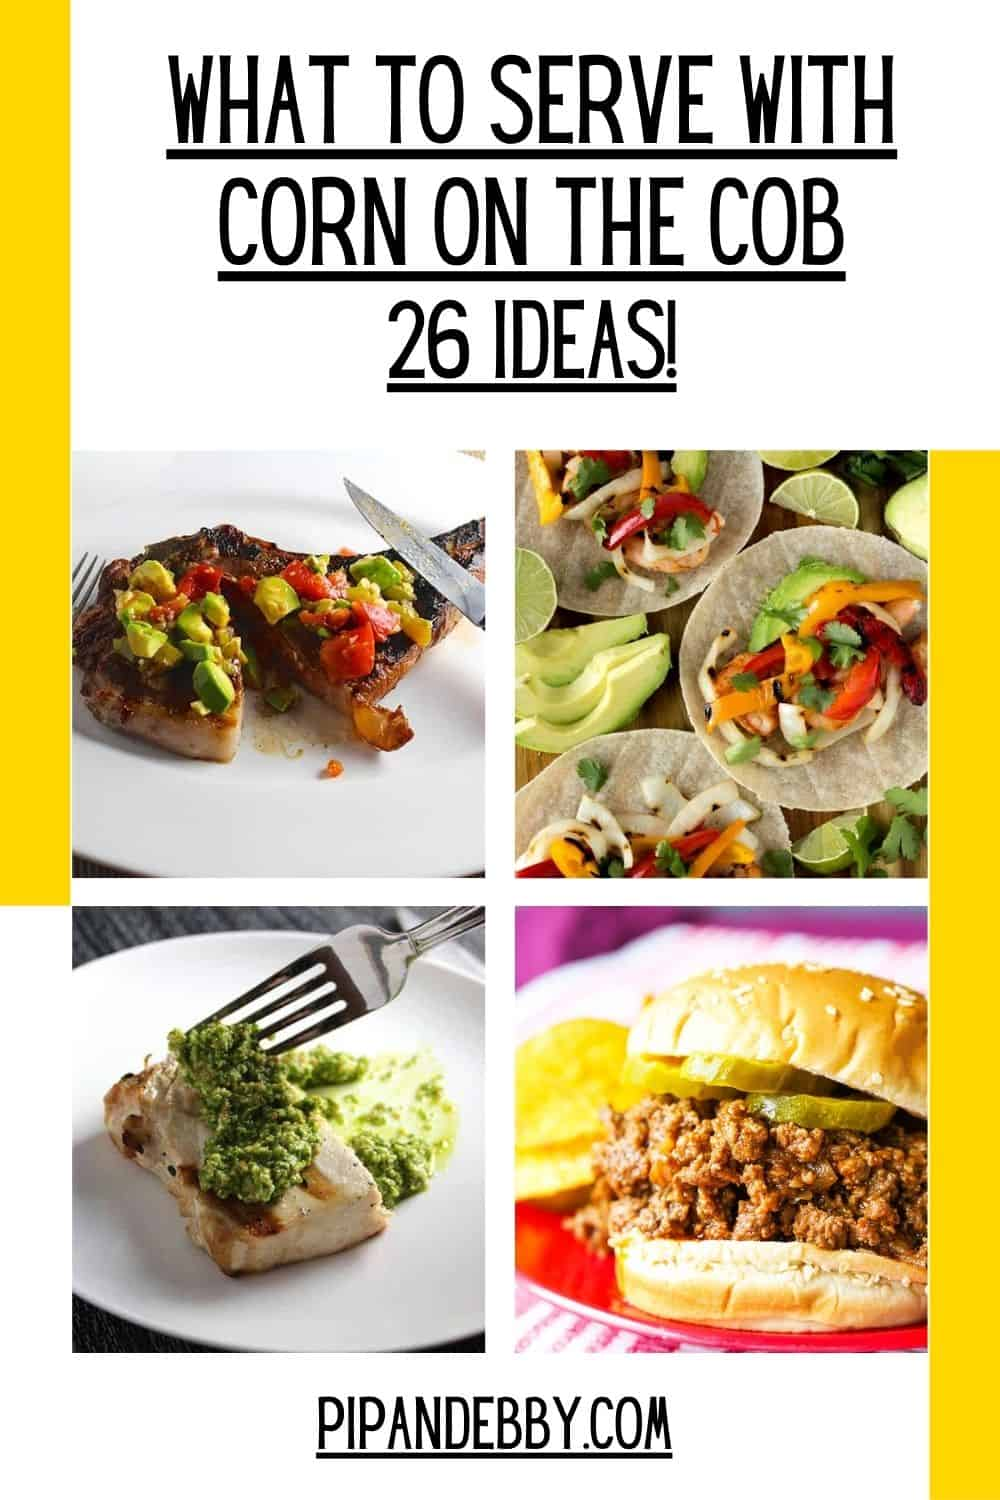 Pinterest pin with 4 images of dinners that would pair well with corn on the cob.